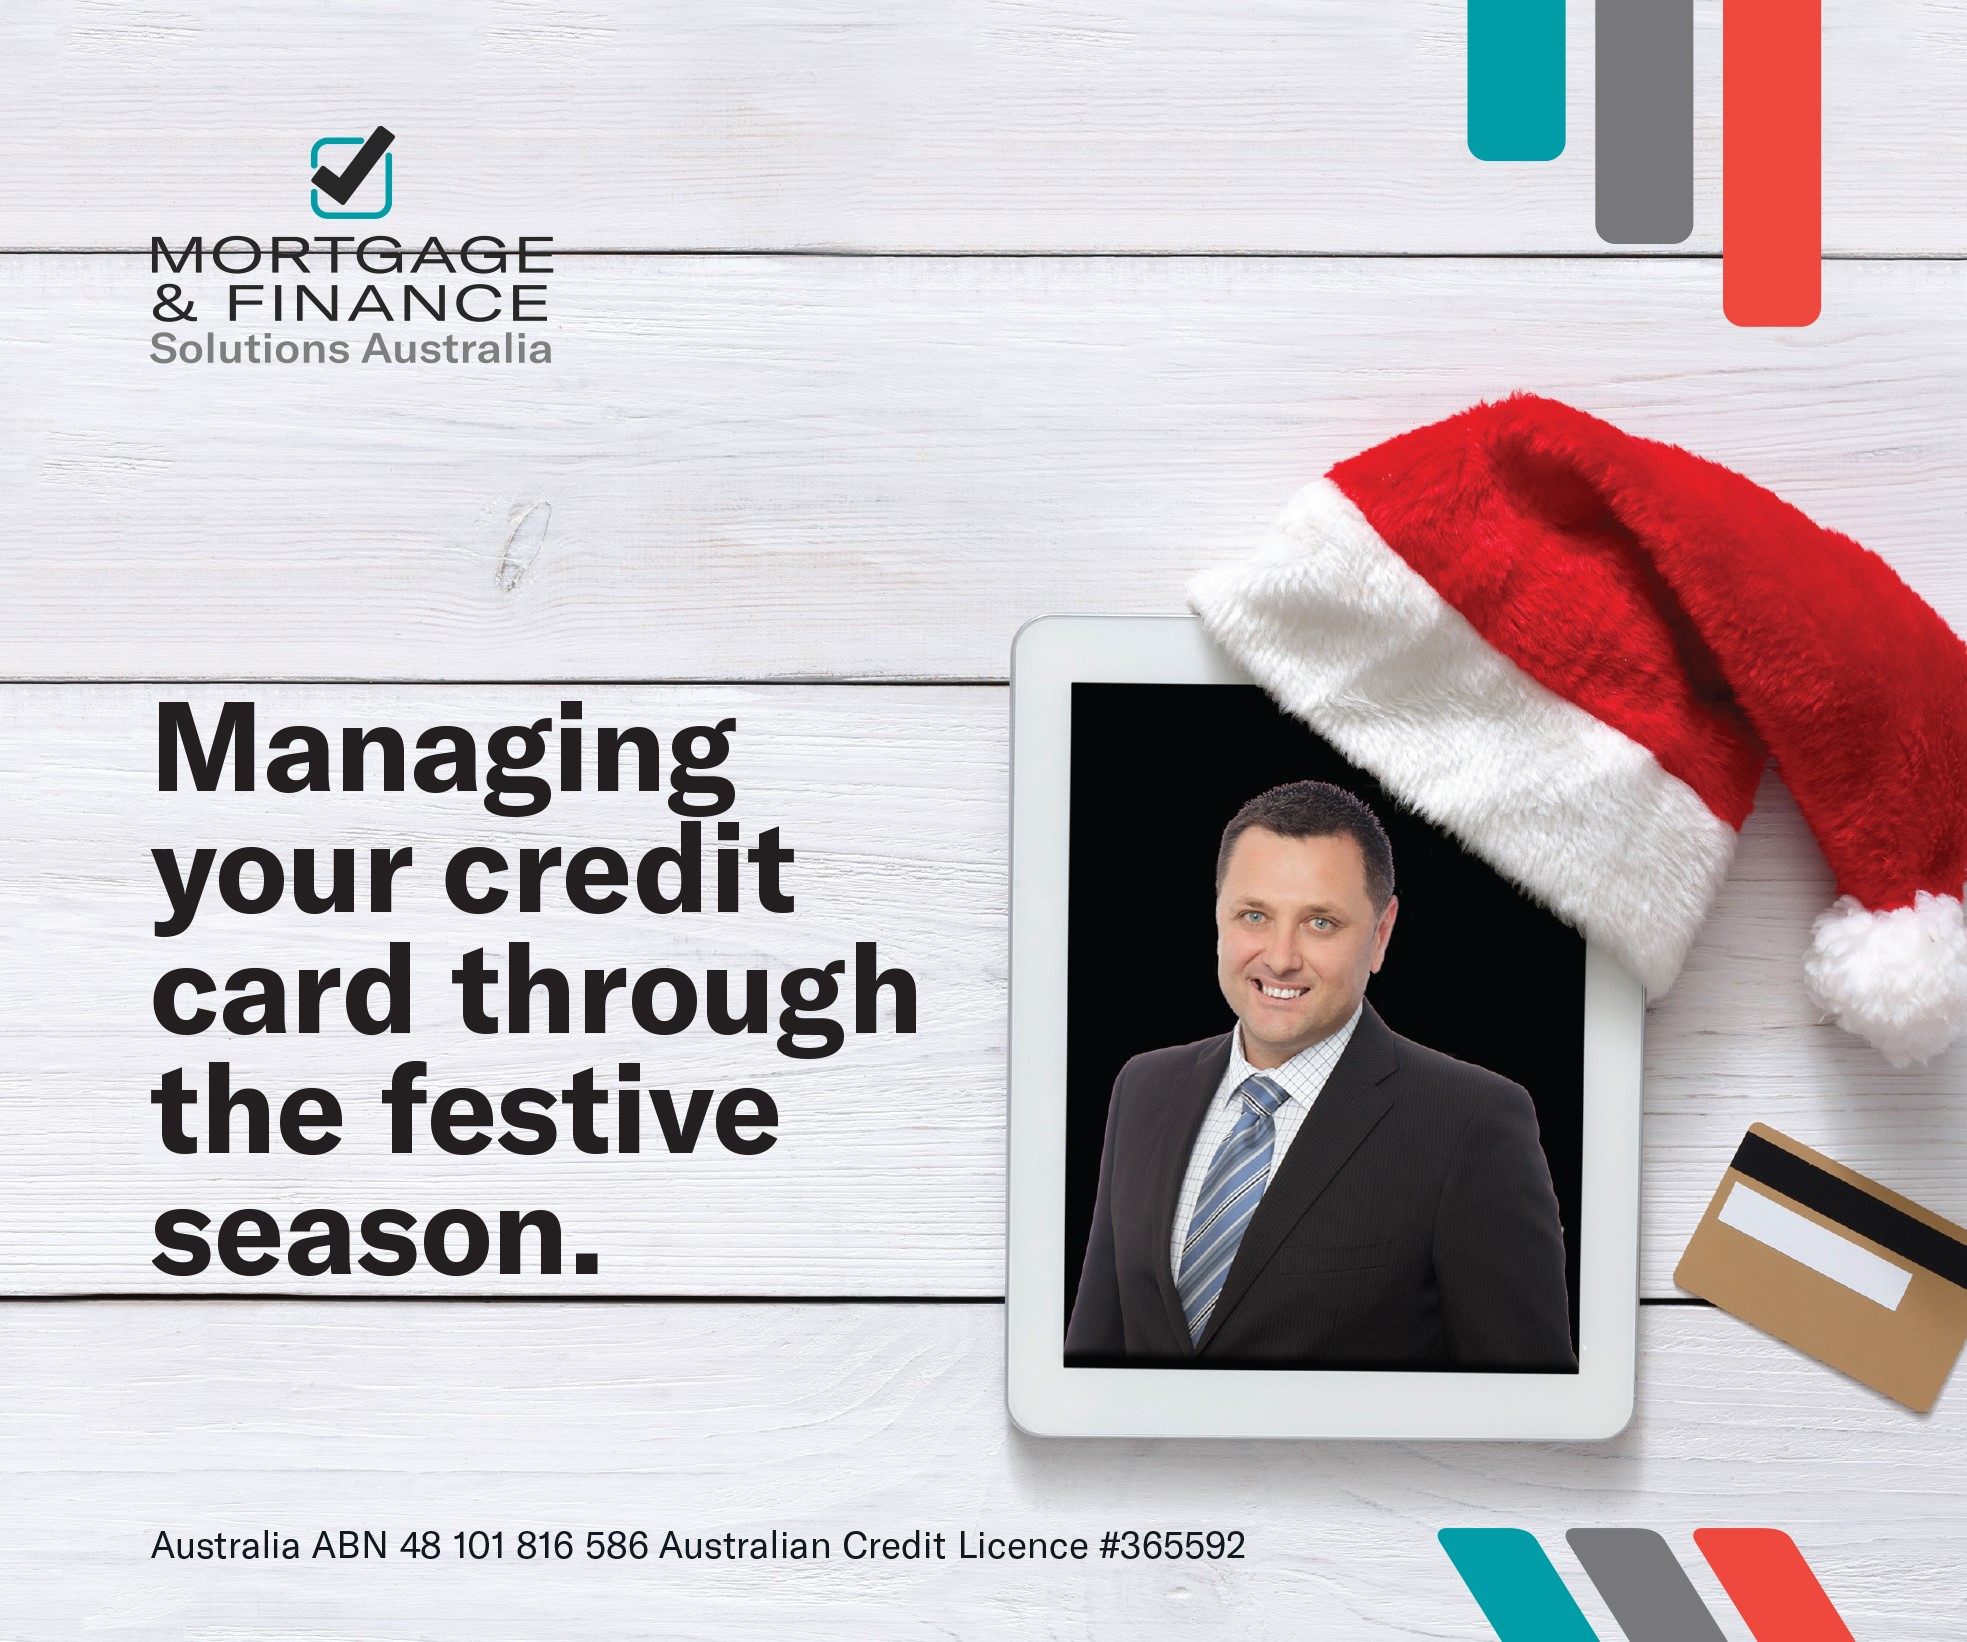 Managing your credit card through the festive season